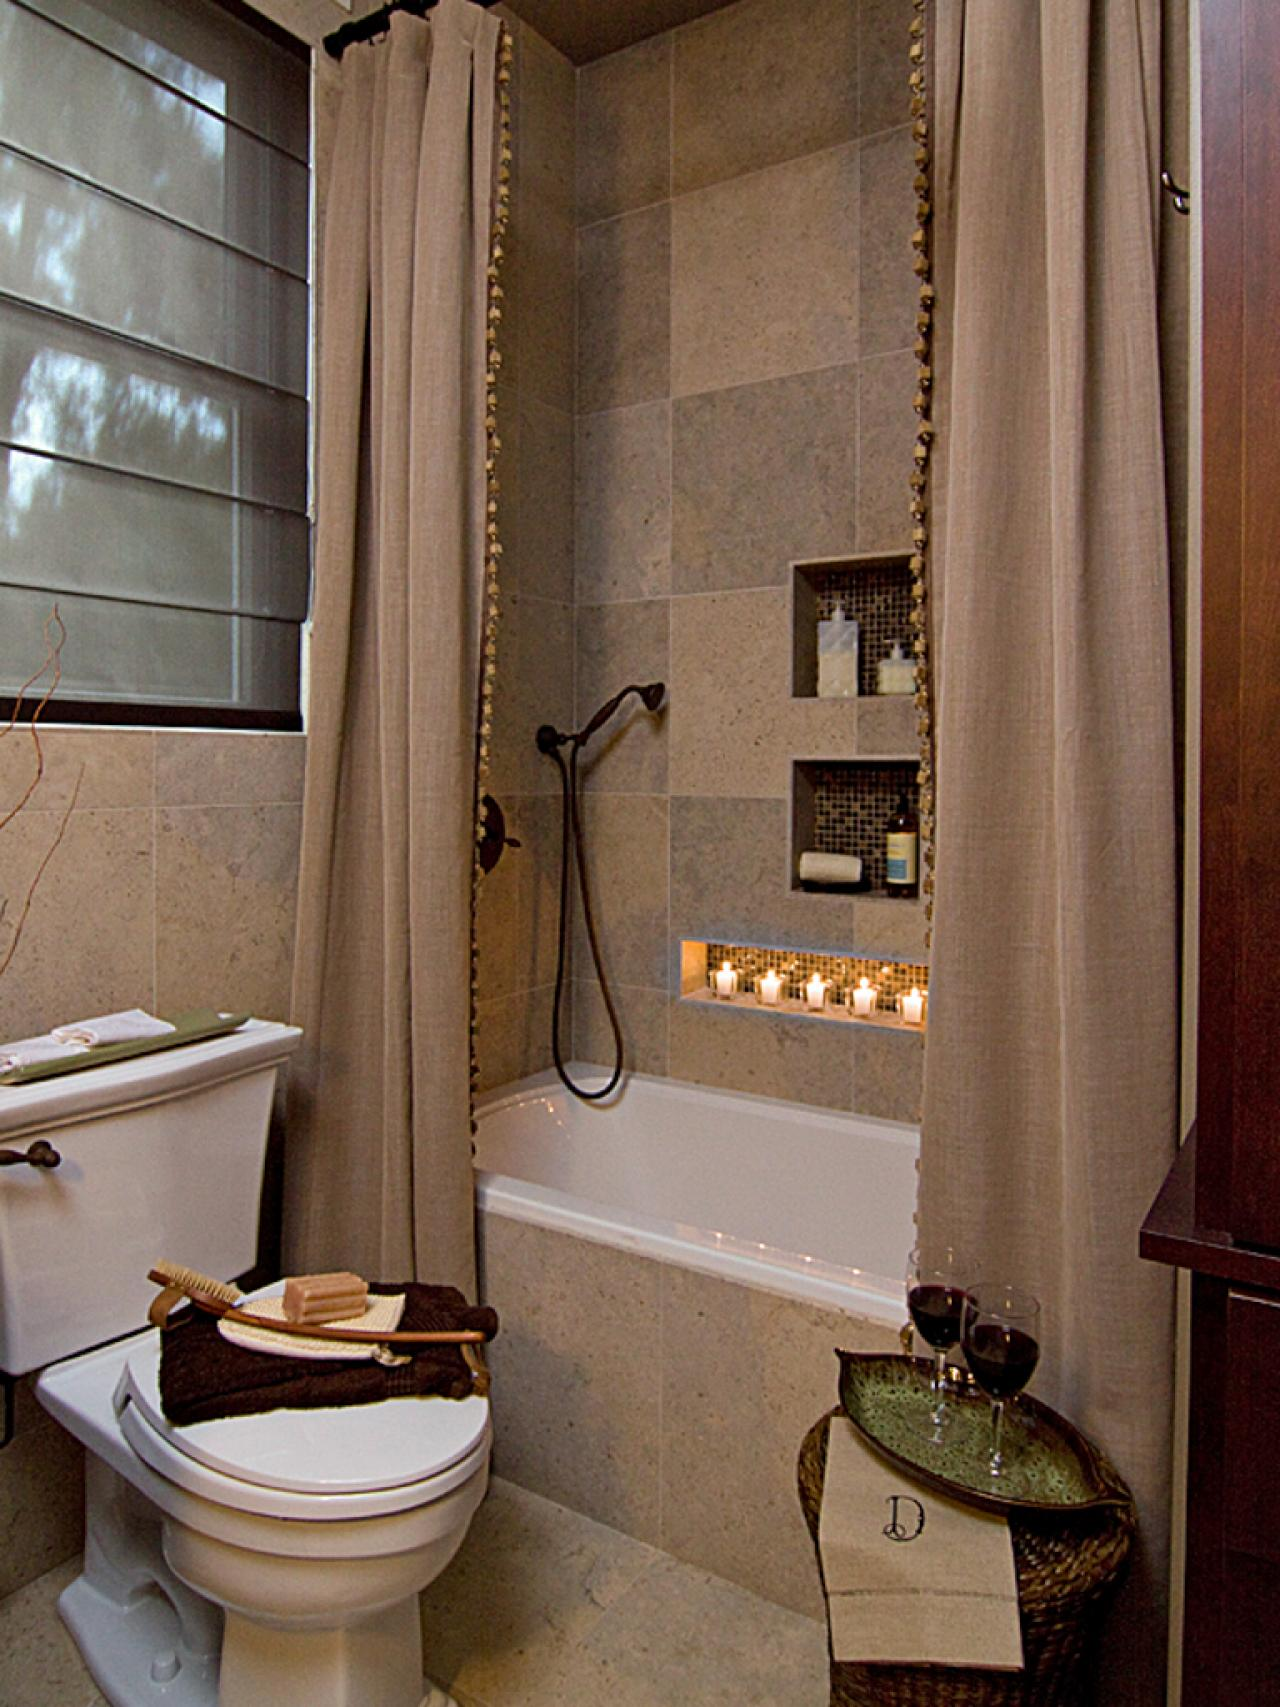 Small bathroom decorating ideas bathroom ideas designs Tips for small bathrooms